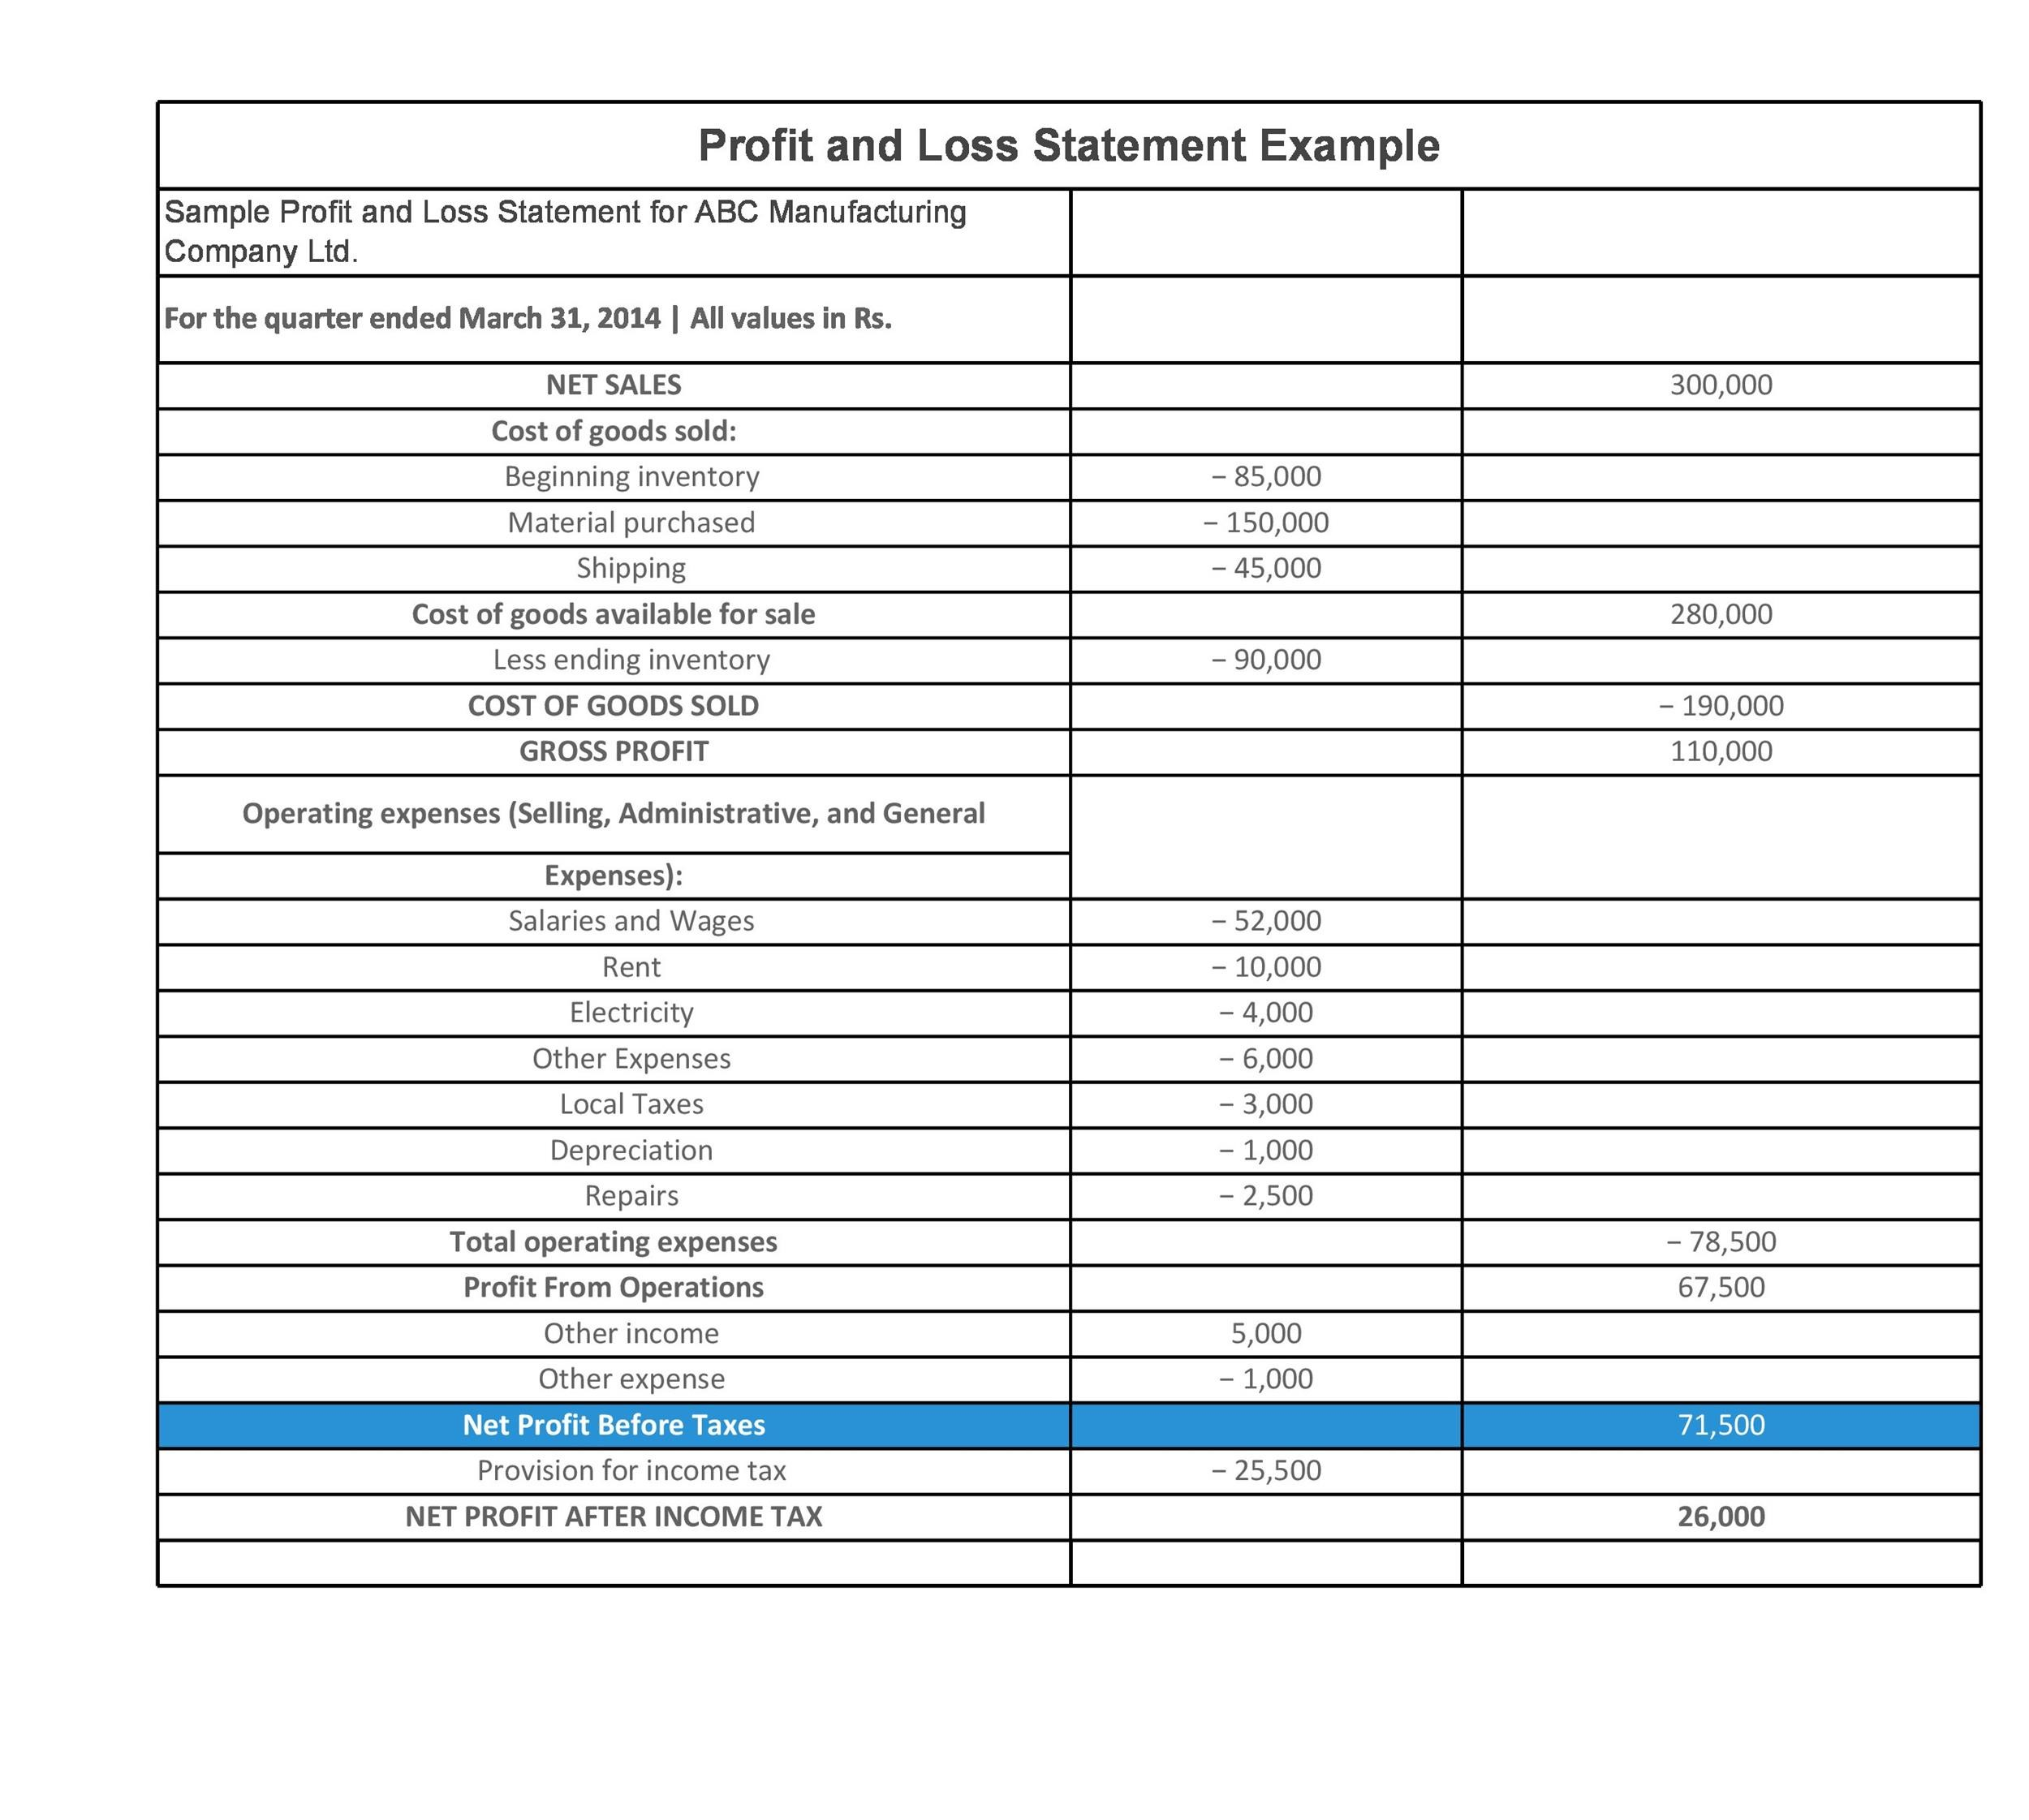 Superior Printable Profit And Loss Statement Template 33 Regarding How To Do Profit And Loss Statement